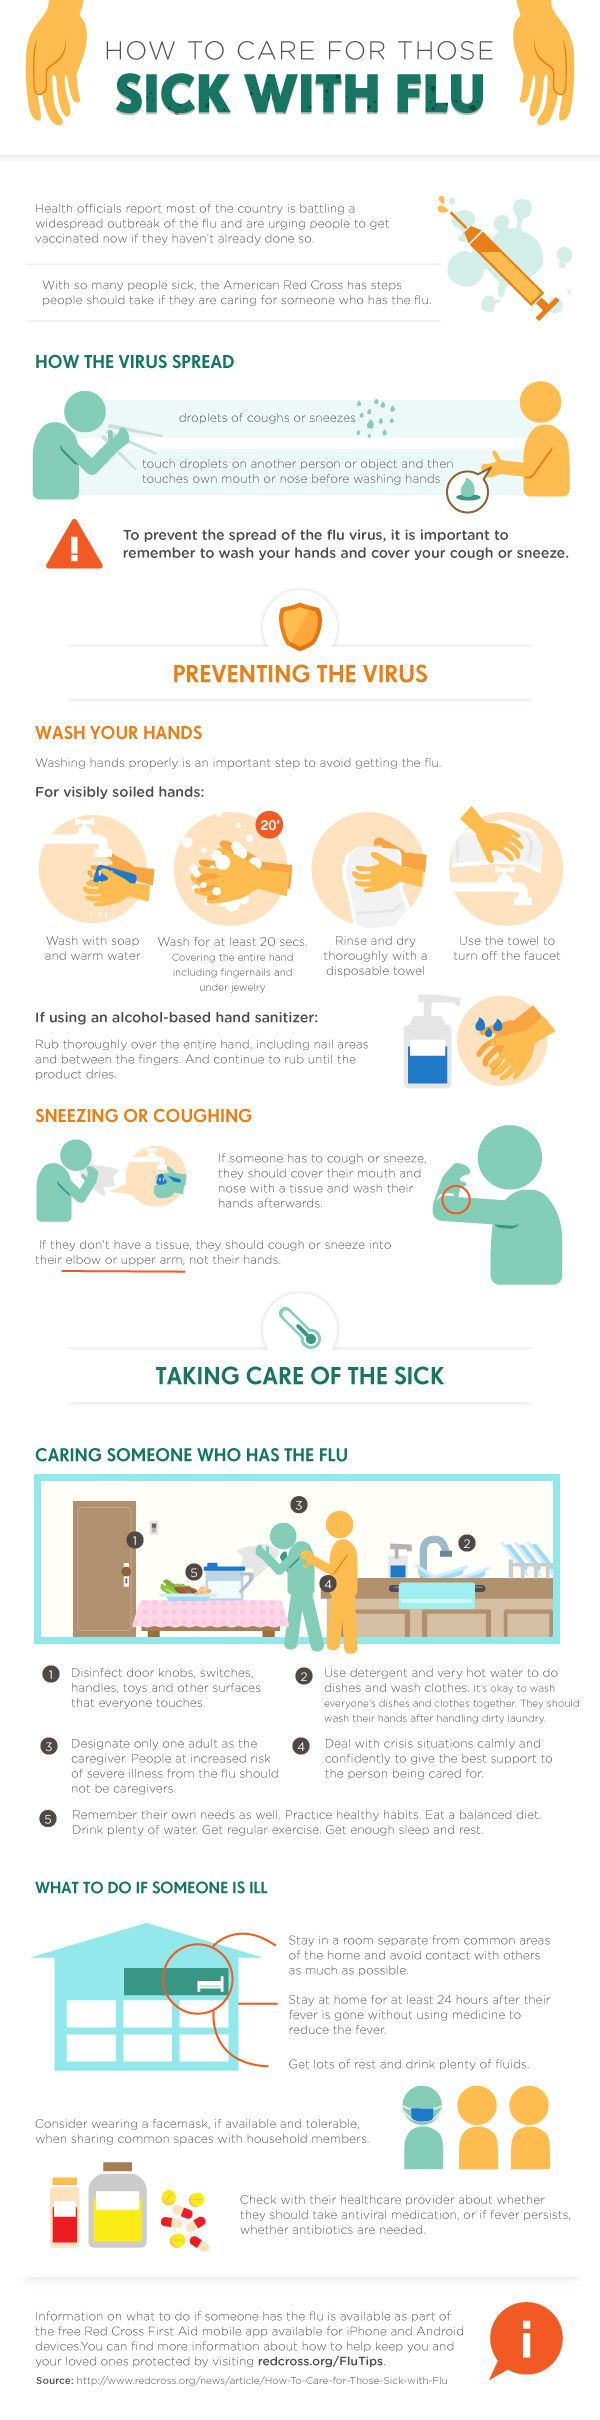 How To Care for Those Sick With Flu #infographic #Flu #Health #HowTo